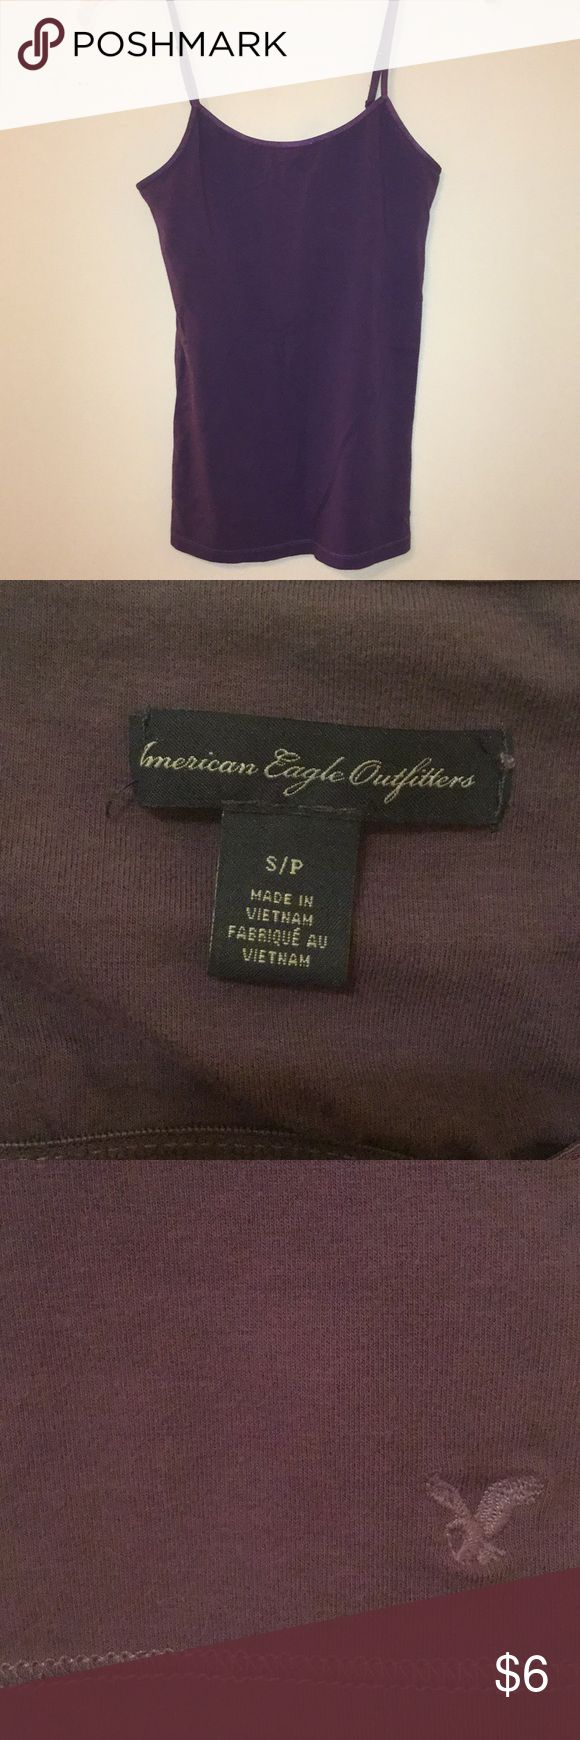 American Eagle Outfitters purple cami BRAND NEW 💜 American Eagle Outfitters purple cami BRAND NEW 💜 Never has been worn. American Eagle Outfitters Tops Camisoles